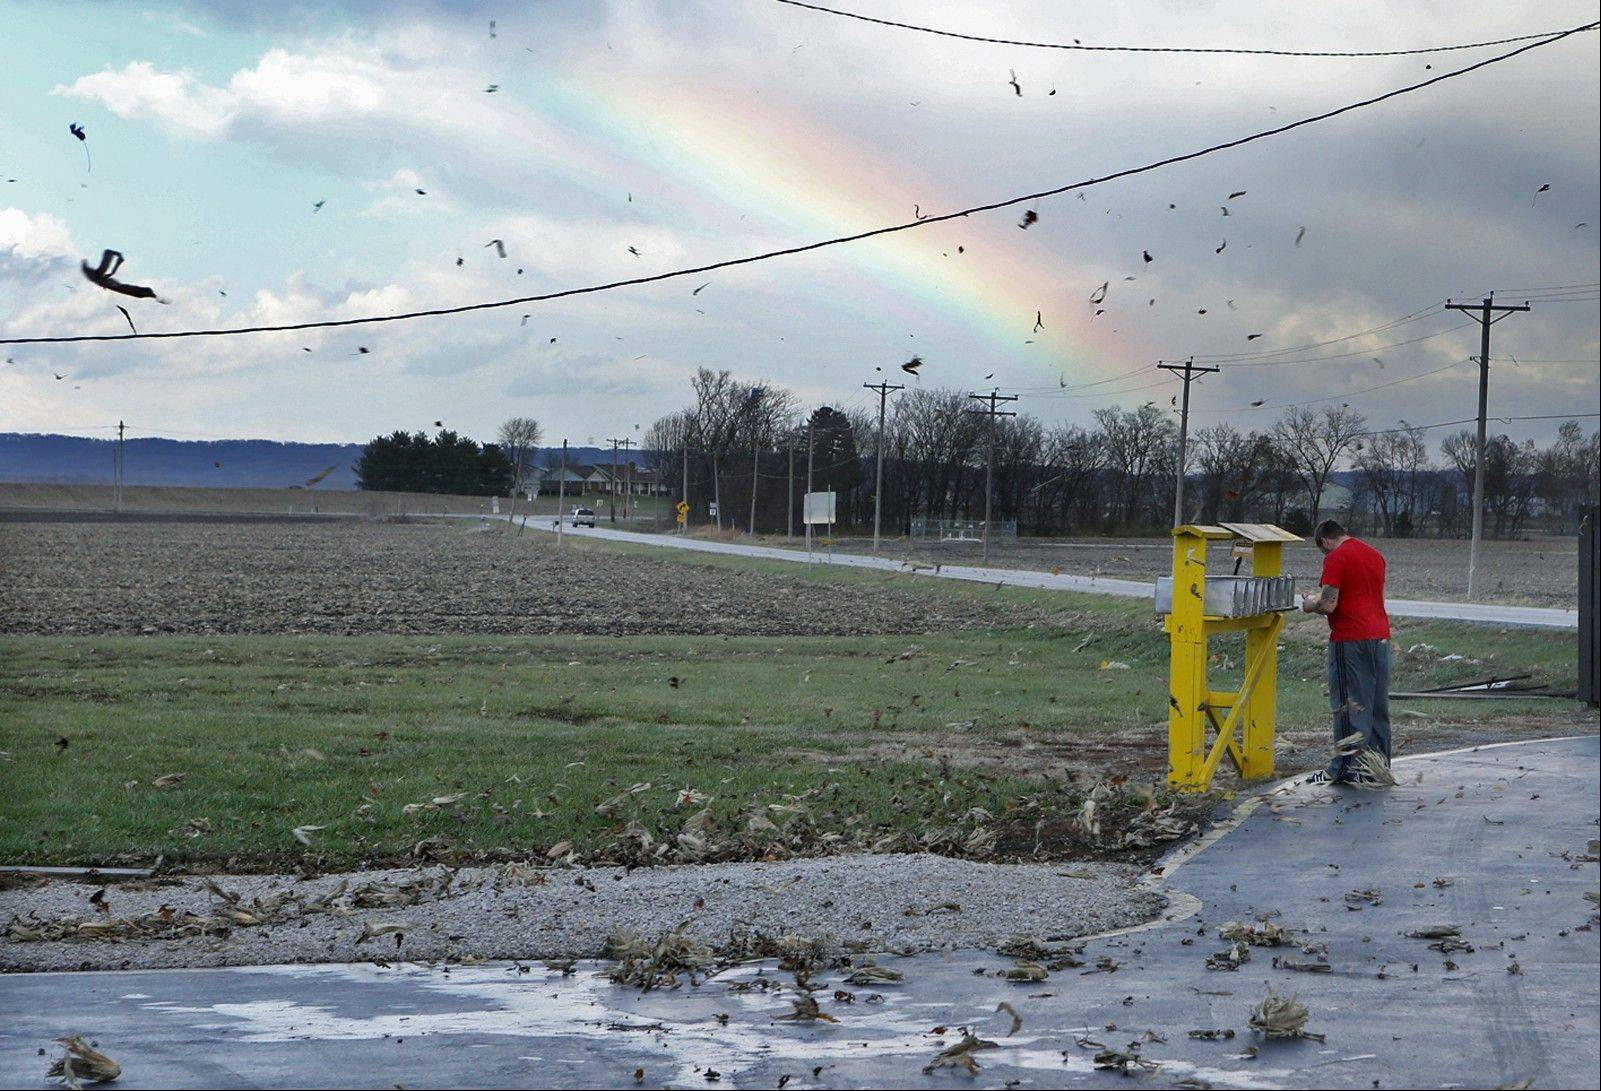 Eric Crawford, 28, waited for the storm to pass and a rainbow to appear before checking on his mail in rural Orchard Farm on Sunday, Nov. 17, 2013, in St. Charles County. Corn husks were flying through the air in the high winds.